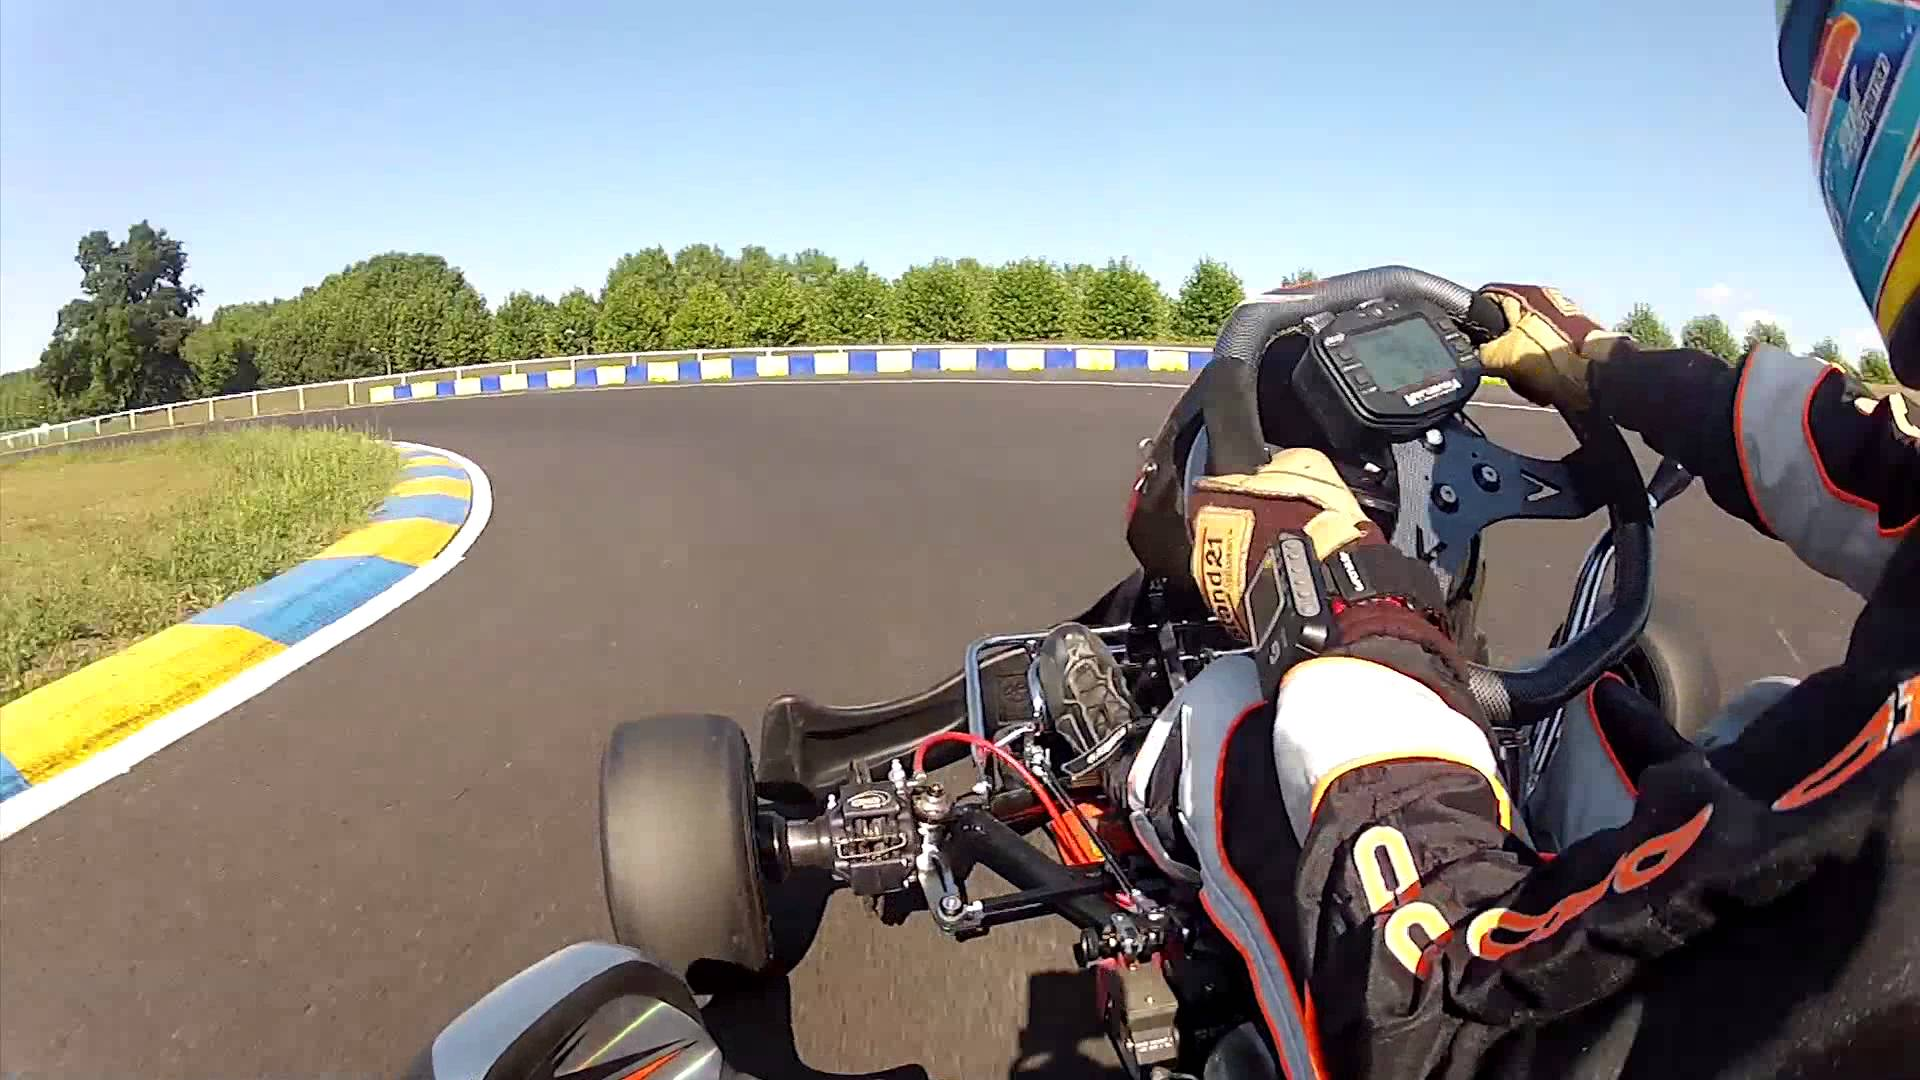 Nouveau circuit international de karting du Mans.